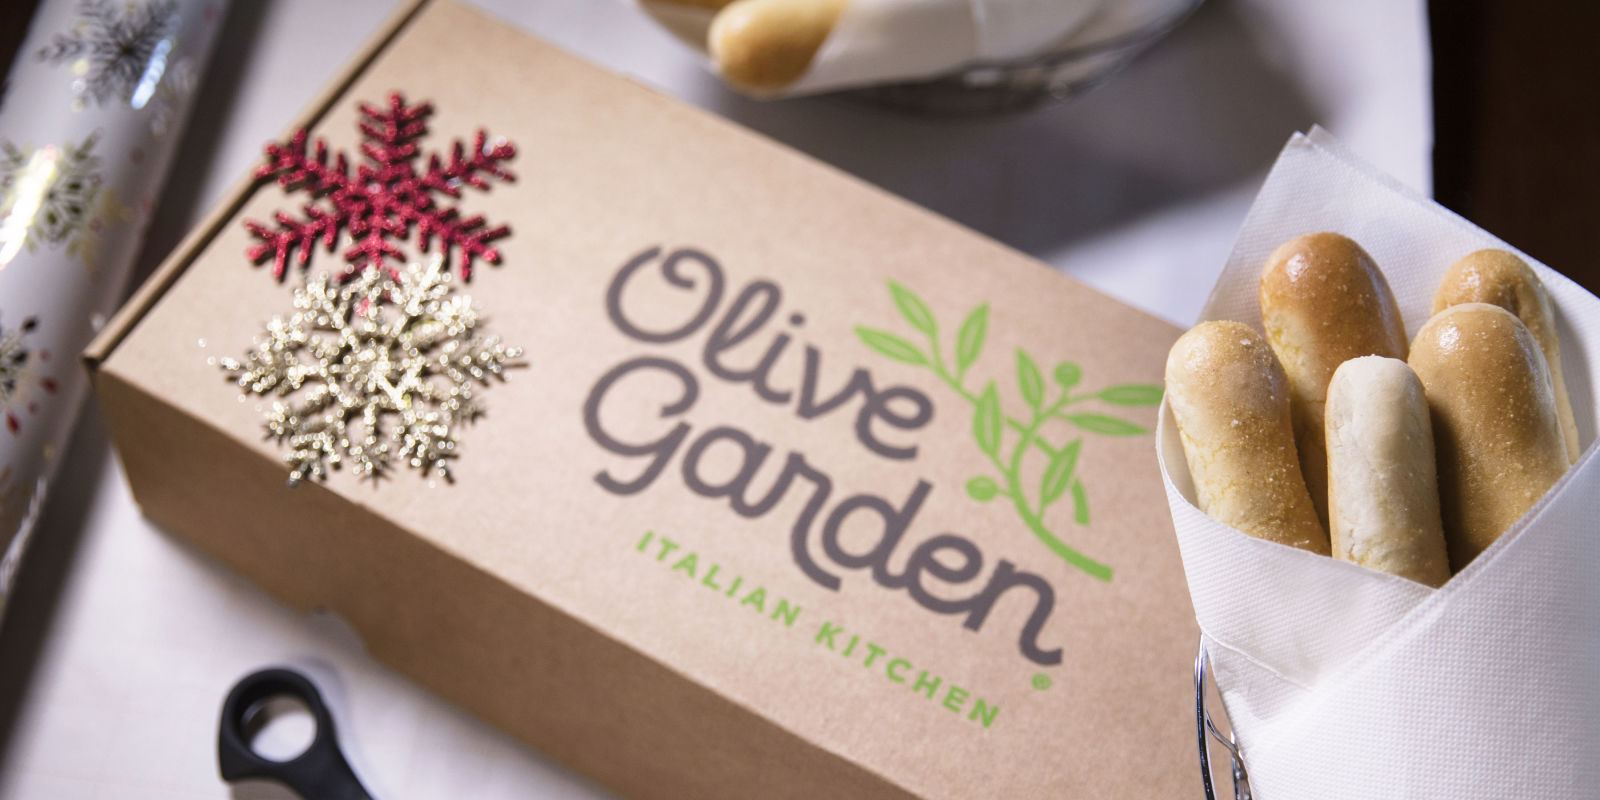 Menu For Olive Garden: Olive Garden Wants You To Give The Gift Of Breadsticks